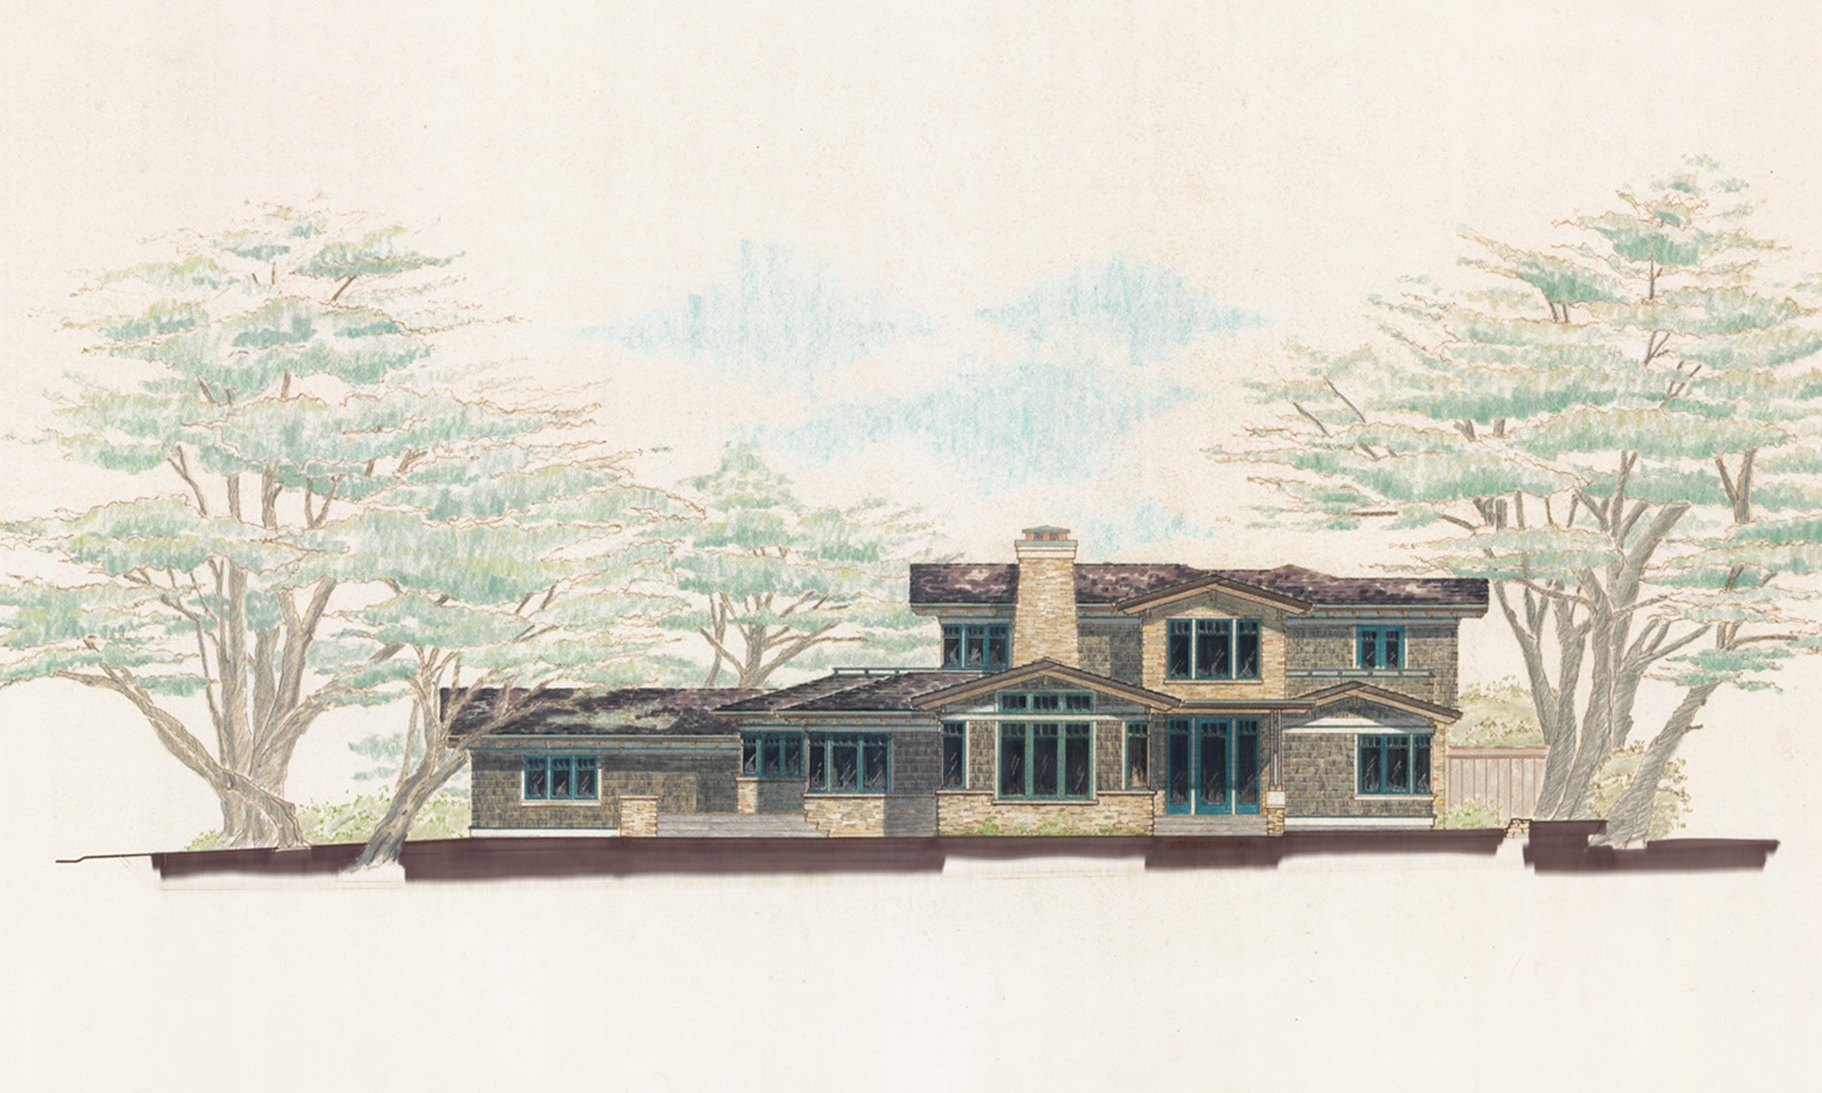 New Residence (proposed) - 3,180 square feet